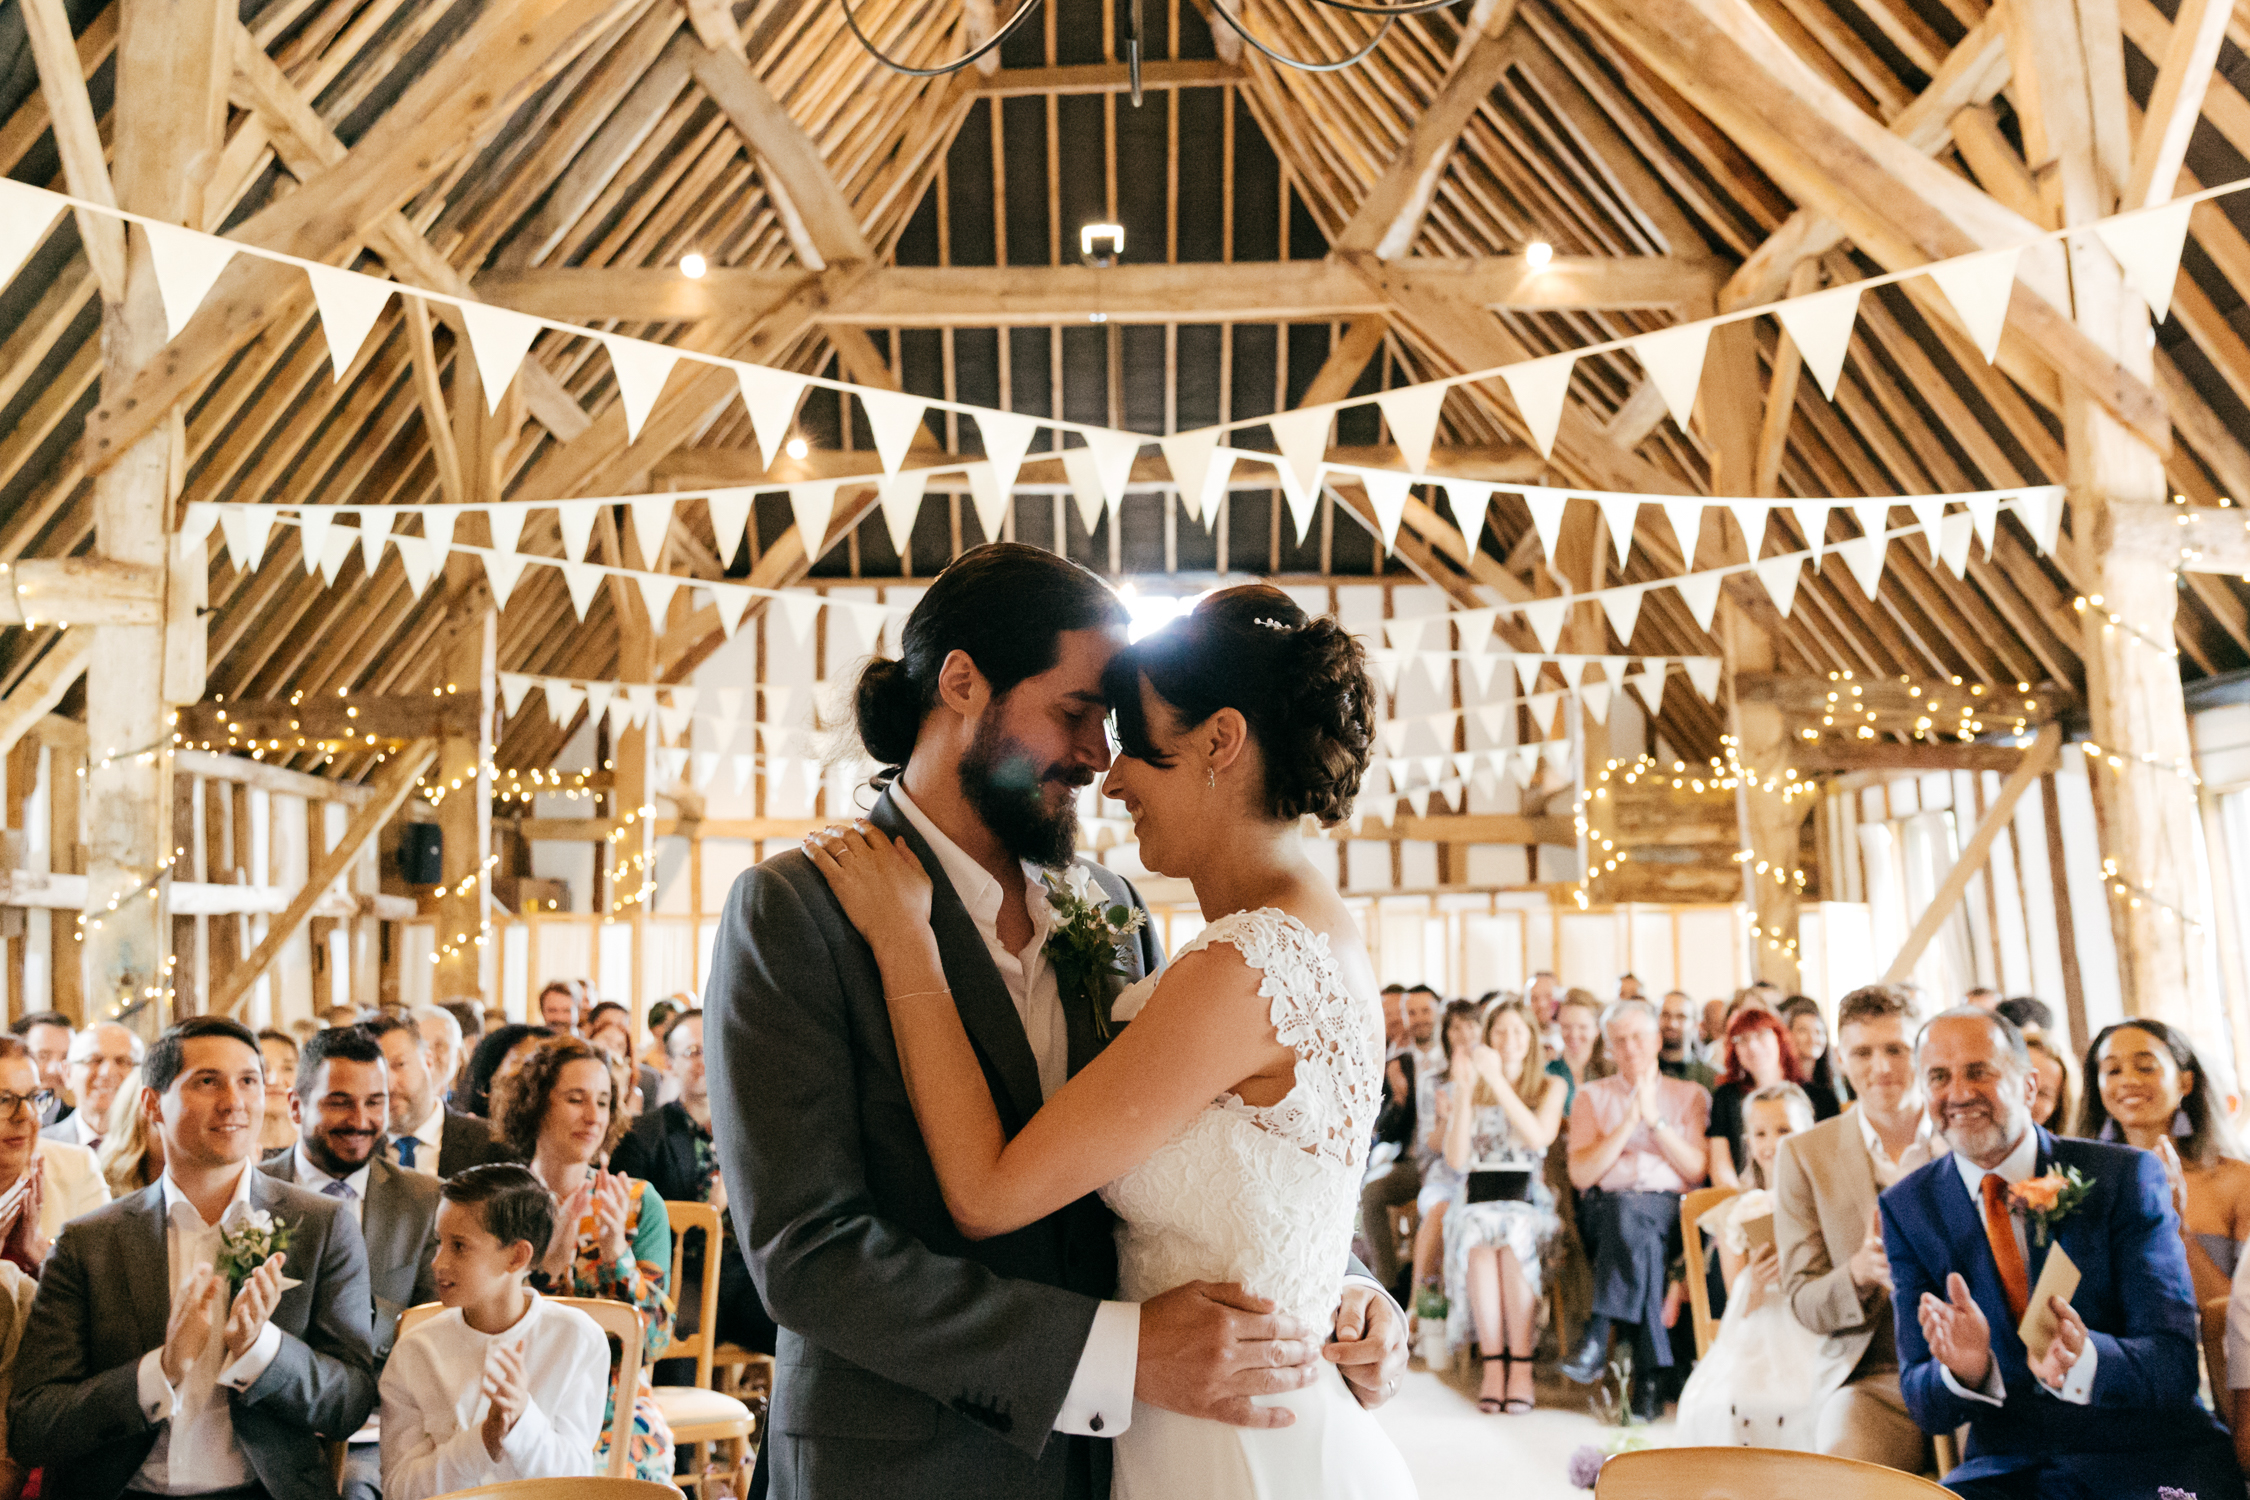 candid wedding photo of wedding ceremony at clock barn